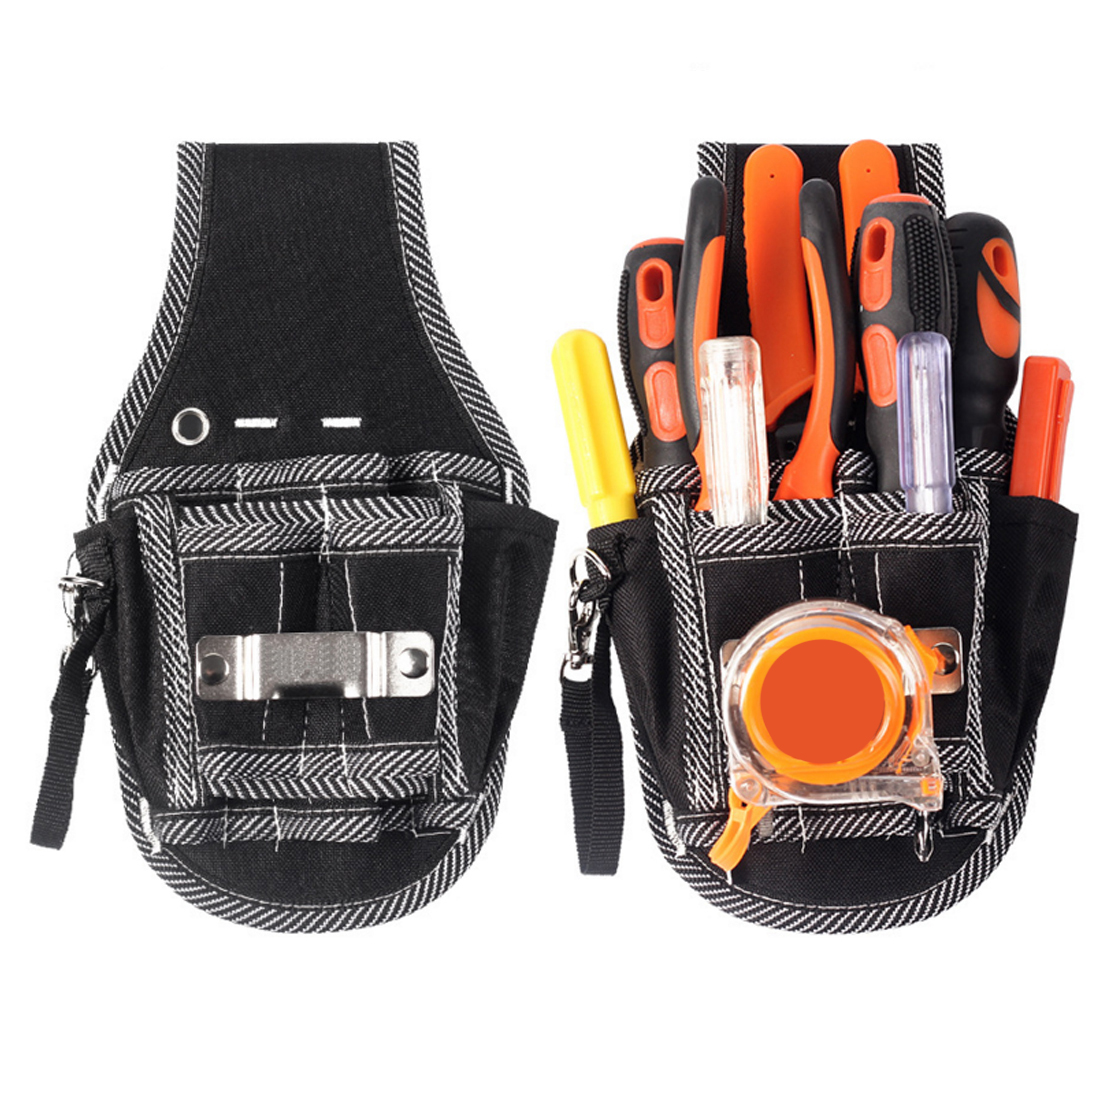 1pcs Screwdriver Pliers Organizer Holder Bag Tool Bag Nylon Pocket Electrician DIY Working Tool Pouch Bag Waist Belt